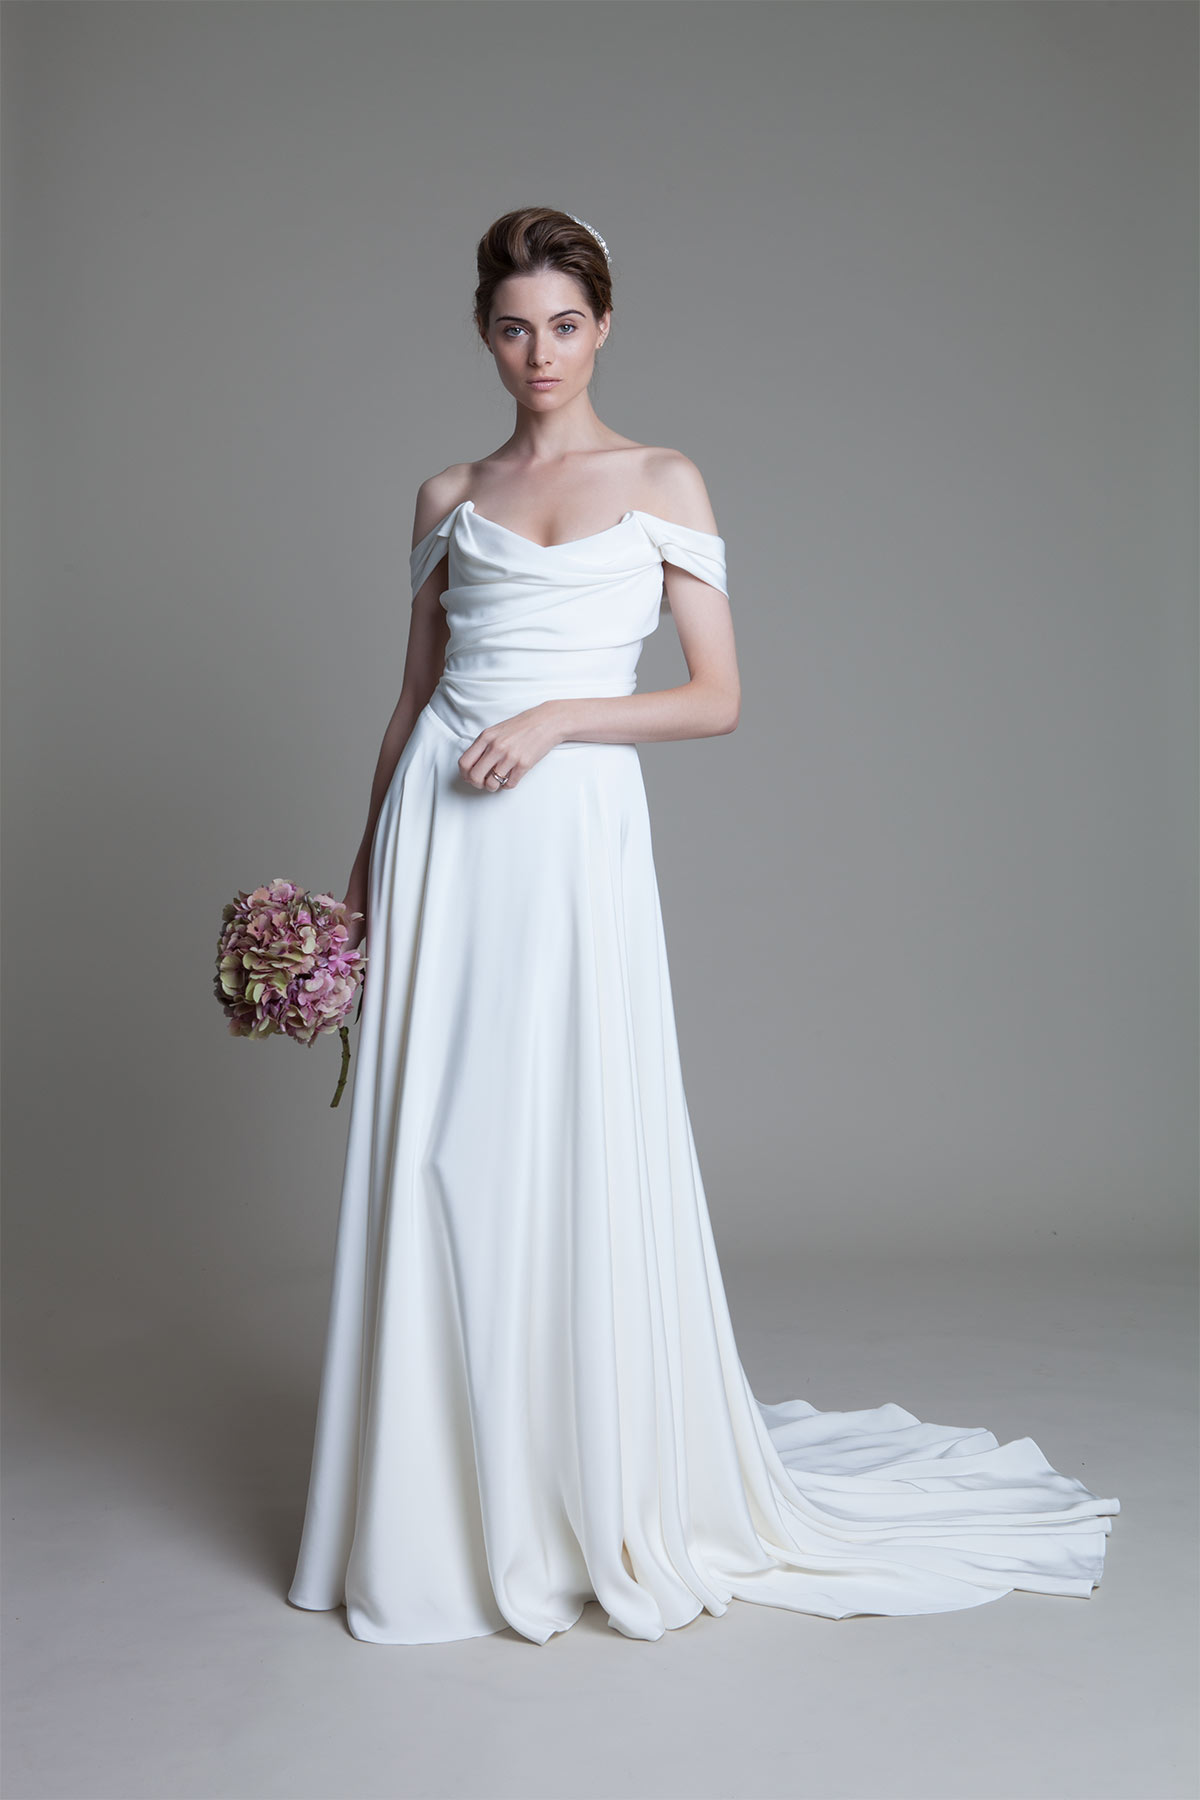 Charlotte silk crepe corset wedding dress with full circle skirt by Halfpenny London